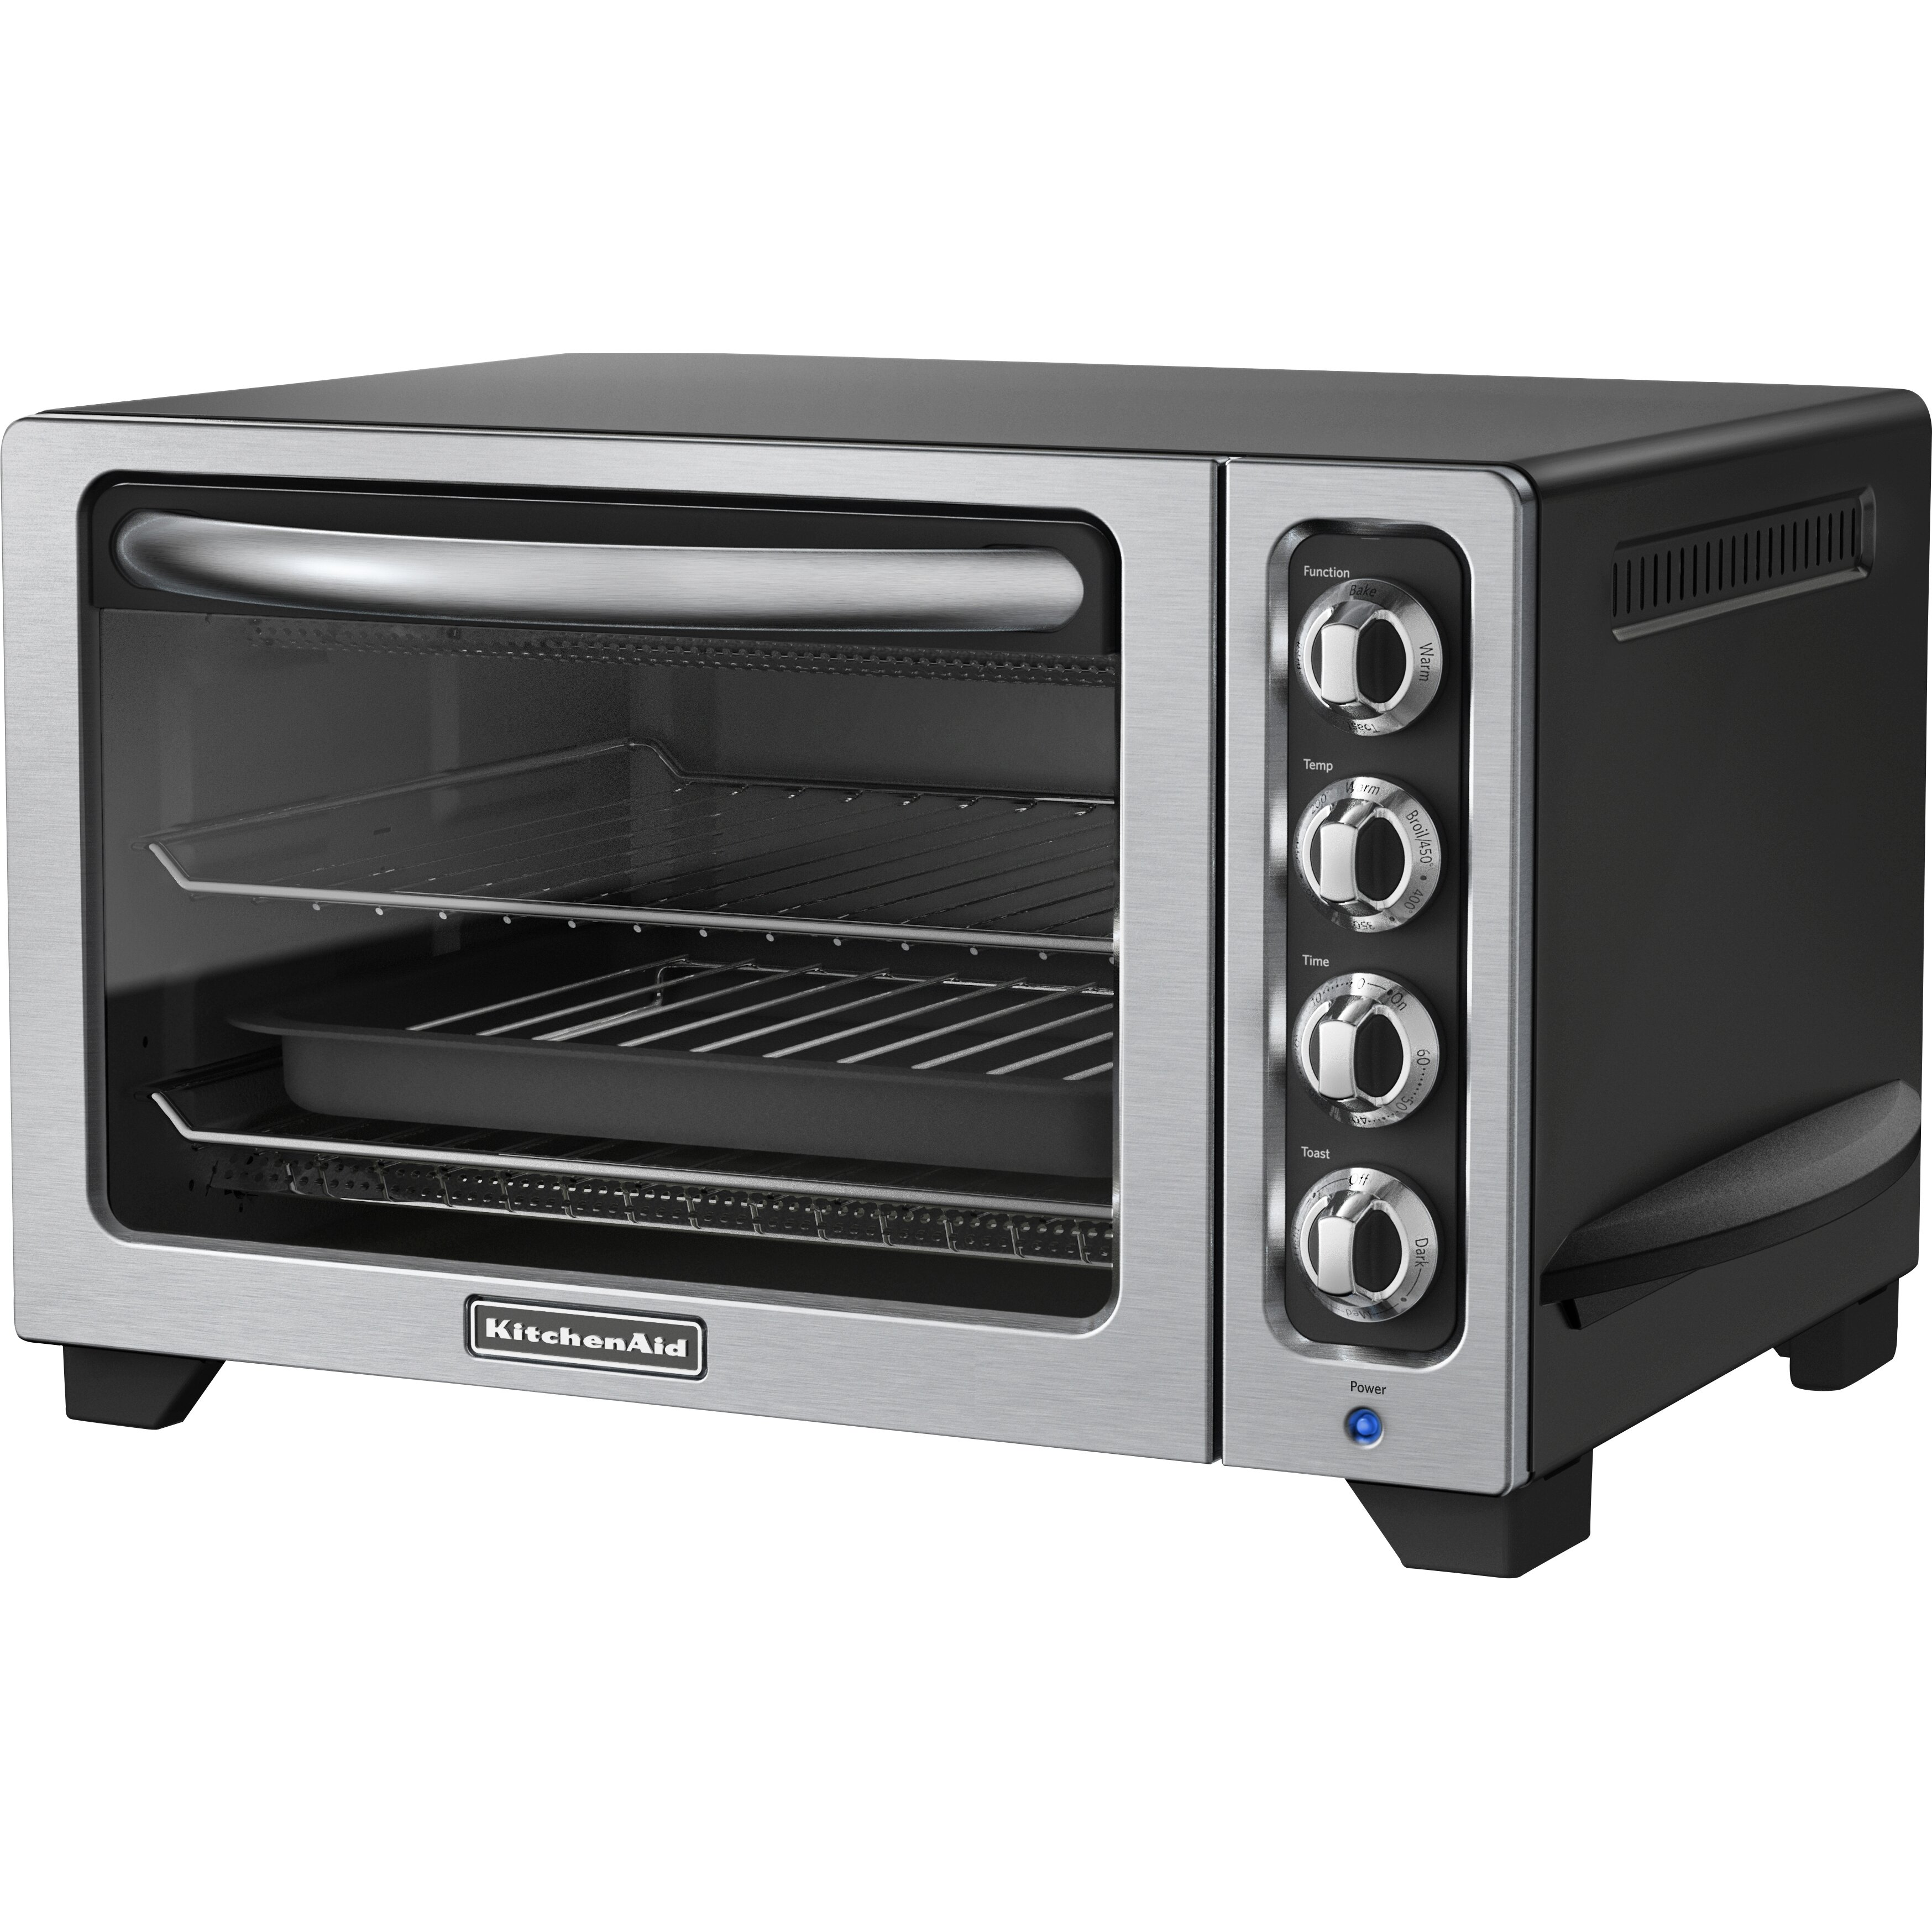 Countertop Toaster Oven by KitchenAid